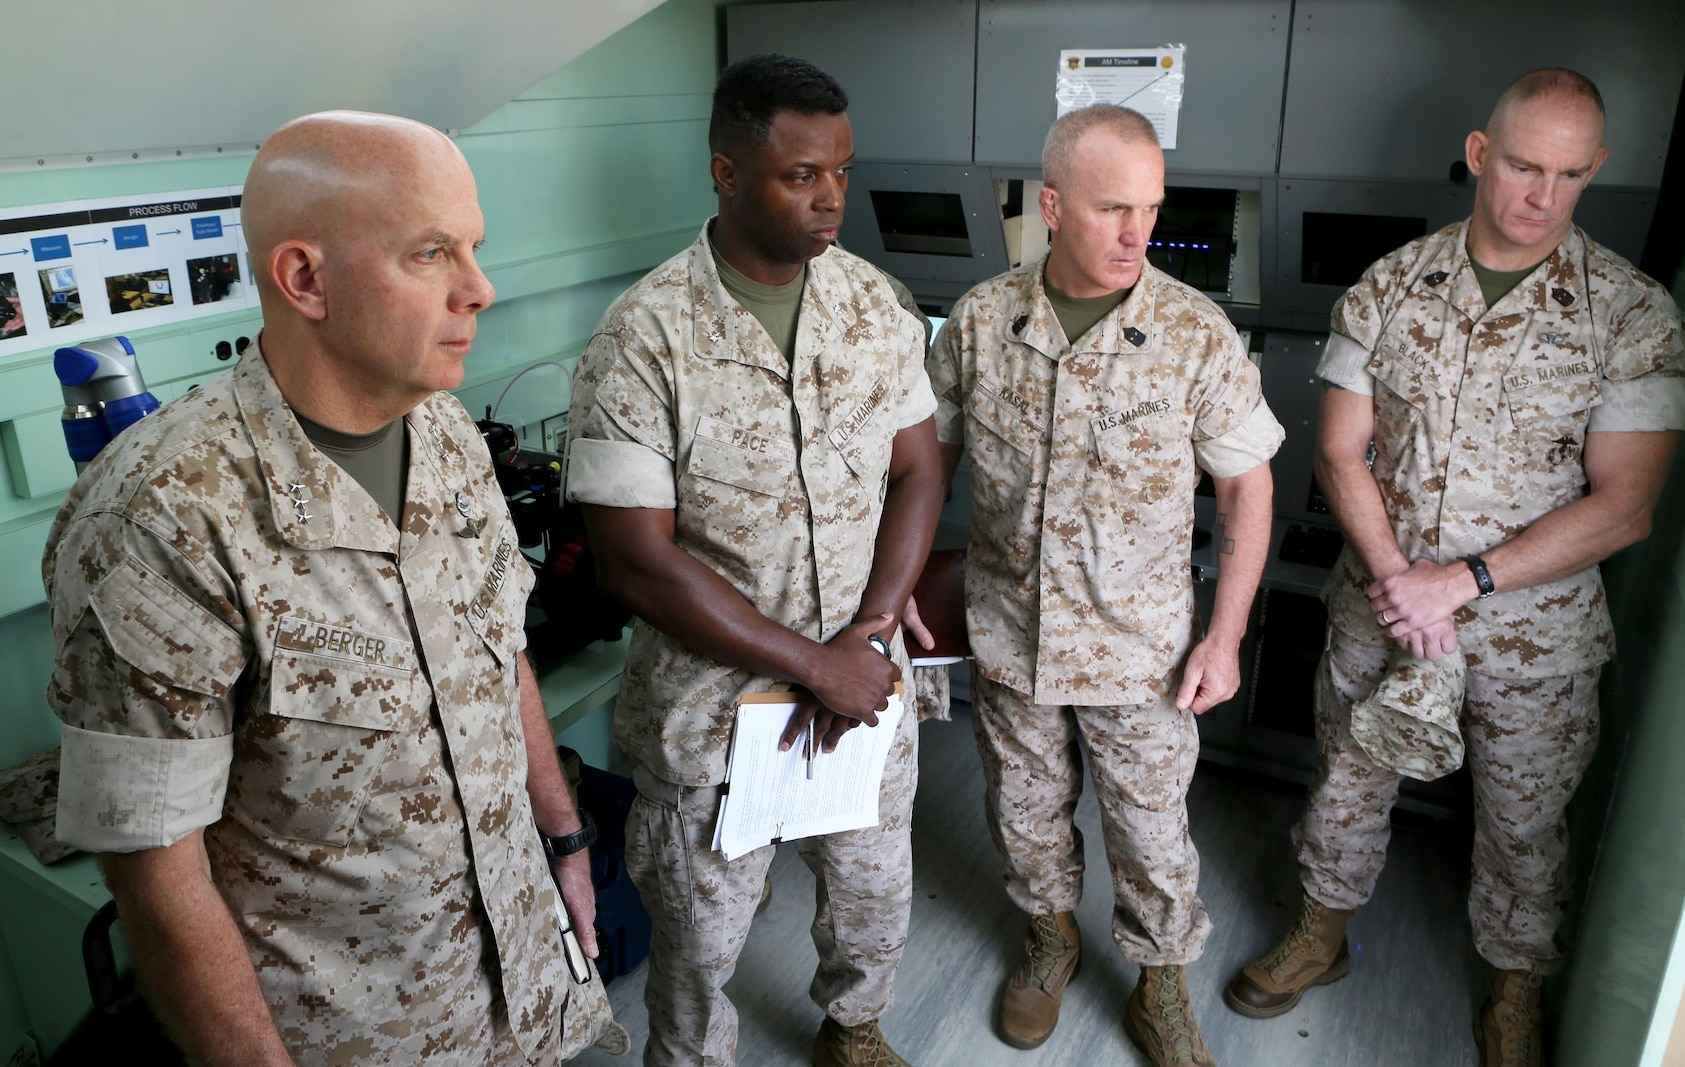 U.S. Marine Lt. Gen. David A. Berger and other high-level unit leaders receive a capabilities demonstration on 3-D printing technology aboard Camp Pendleton, Calif., April 6, 2016. Berger is the commanding general of I Marine Expeditionary Force. Marines with 1st Maintenance Battalion, Combat Logistics Regiment 15, 1st Marine Logistics Group, demonstrated the potential of 3-D printing capabilities to the commanders of I MEF and 1st MLG. Still in the testing phase, the battalion has already discovered endless possibilities as to how they can integrate the technology into their mission. (U.S. Marine Corps photo by Cpl. Carson Gramley/released)